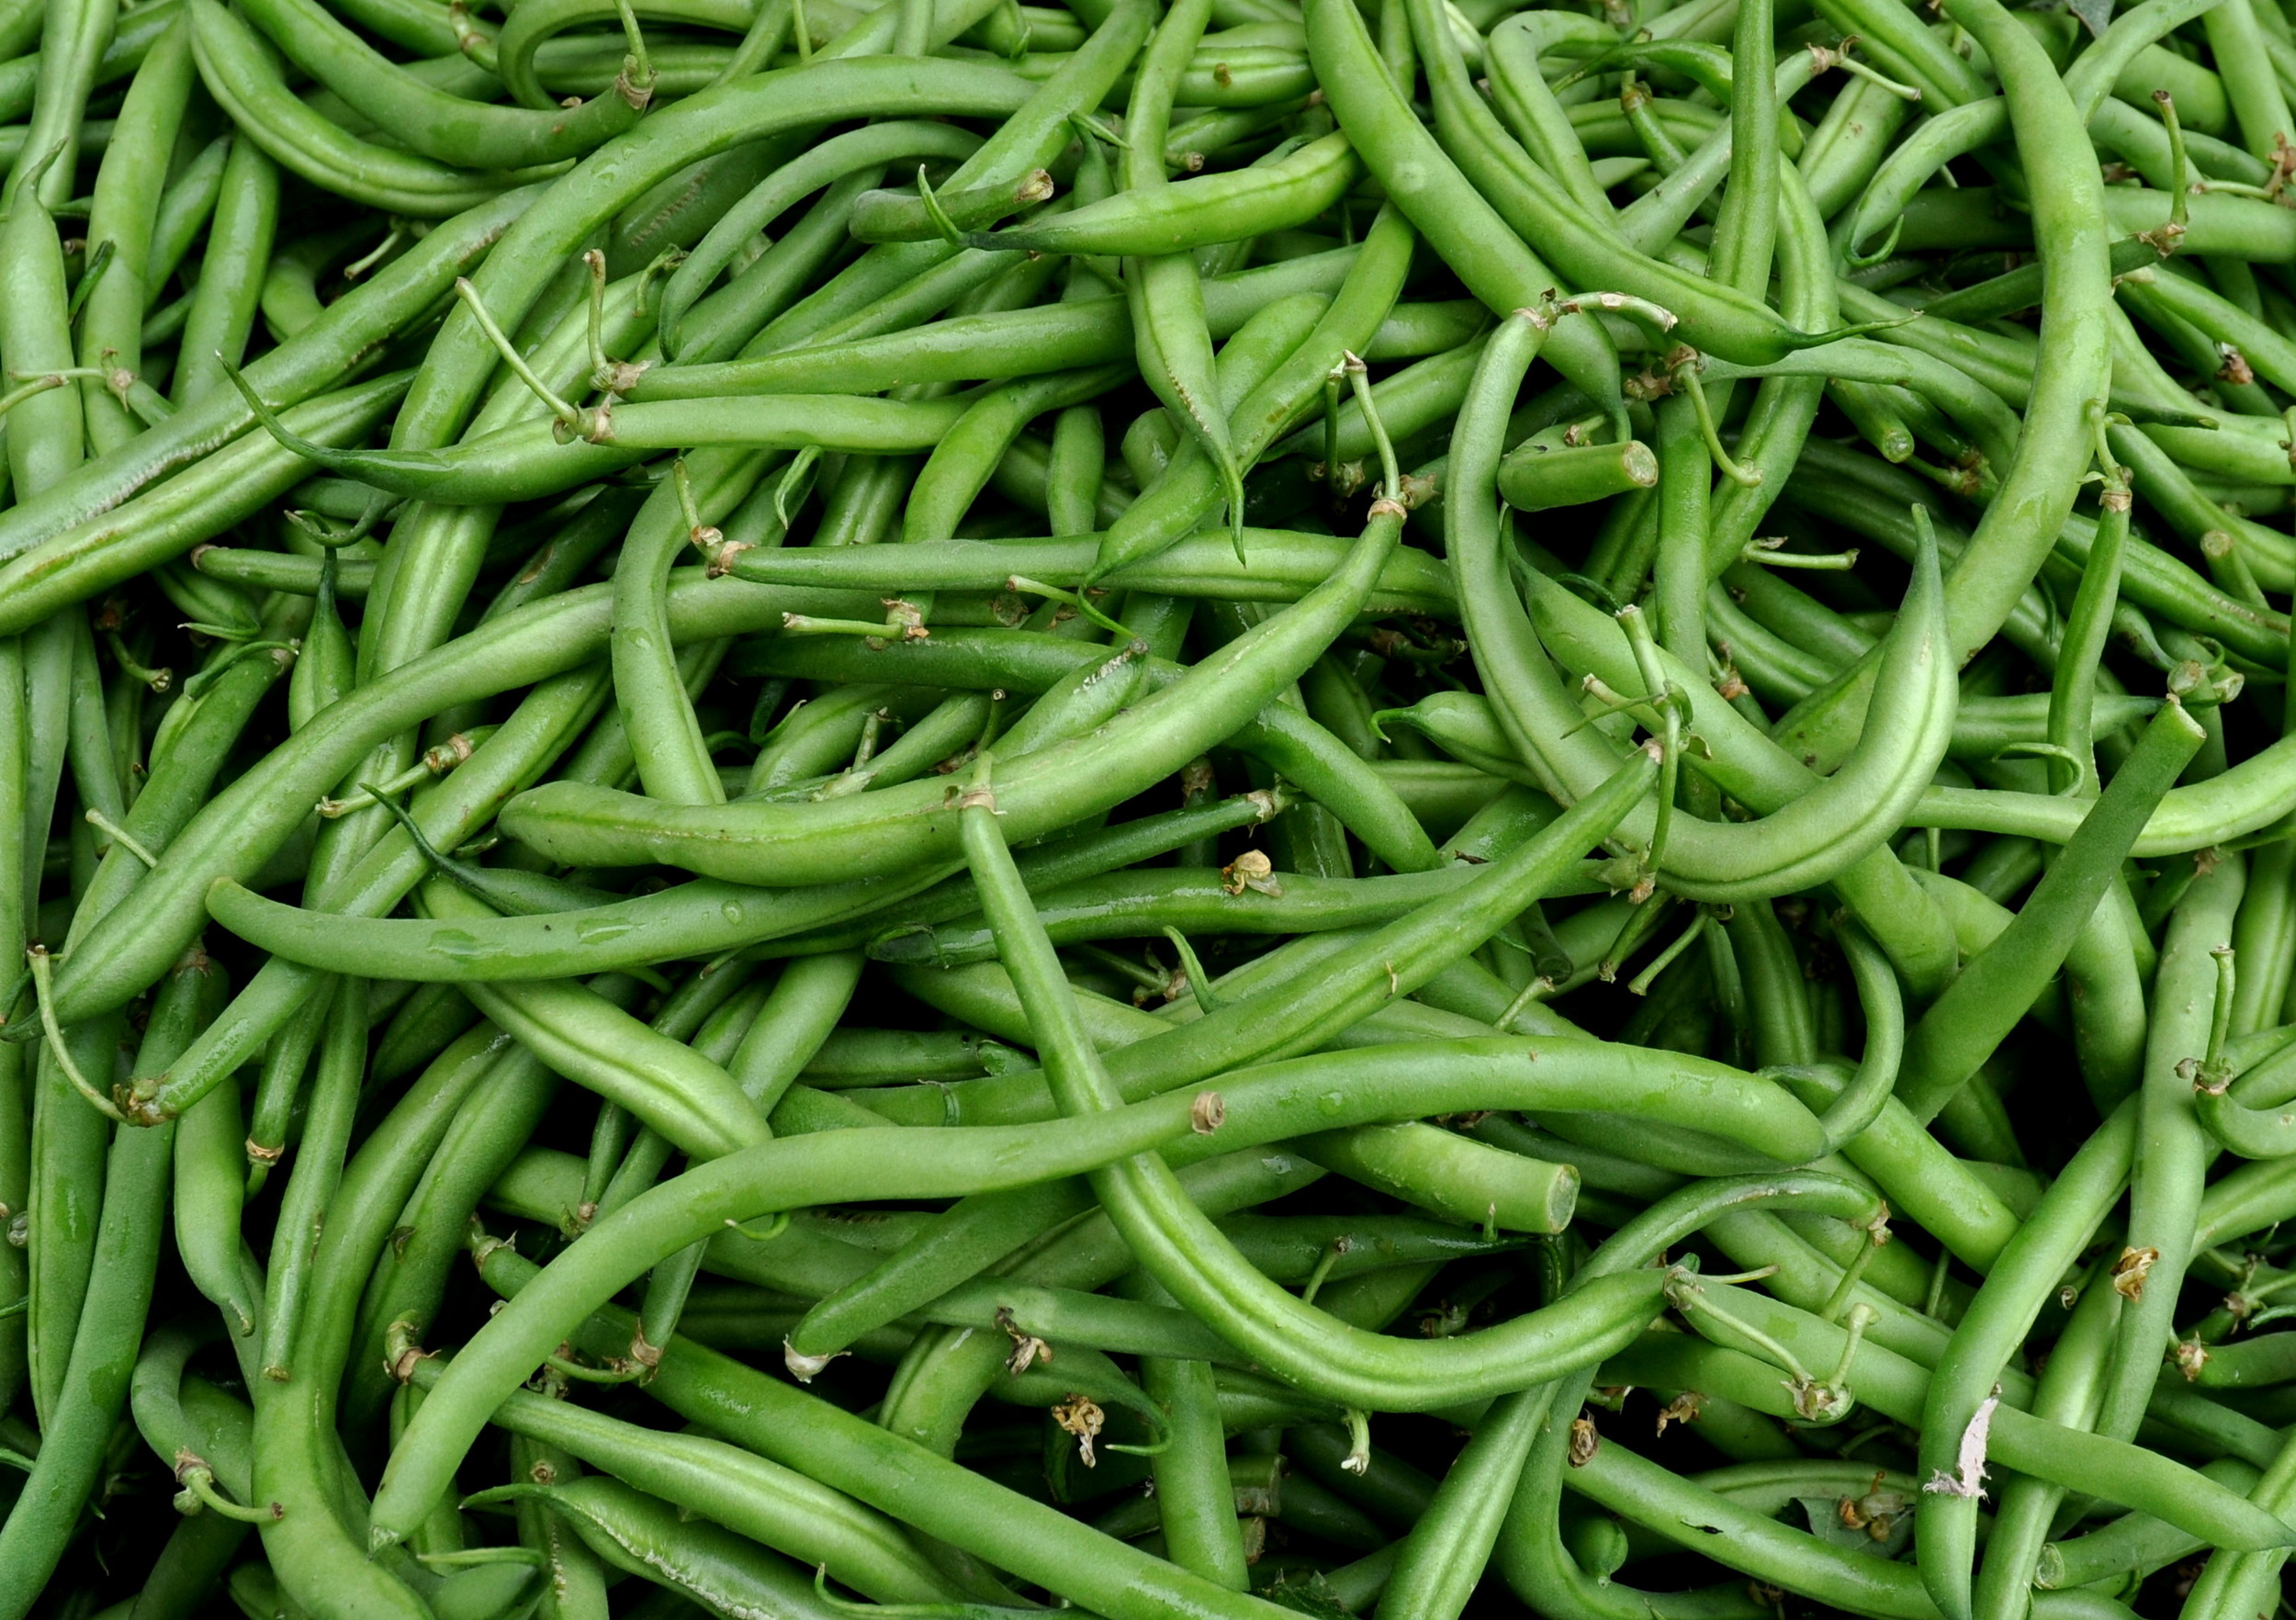 Green beans from Magana Farms. Photo copyright 2012 by Zachary D. Lyons.